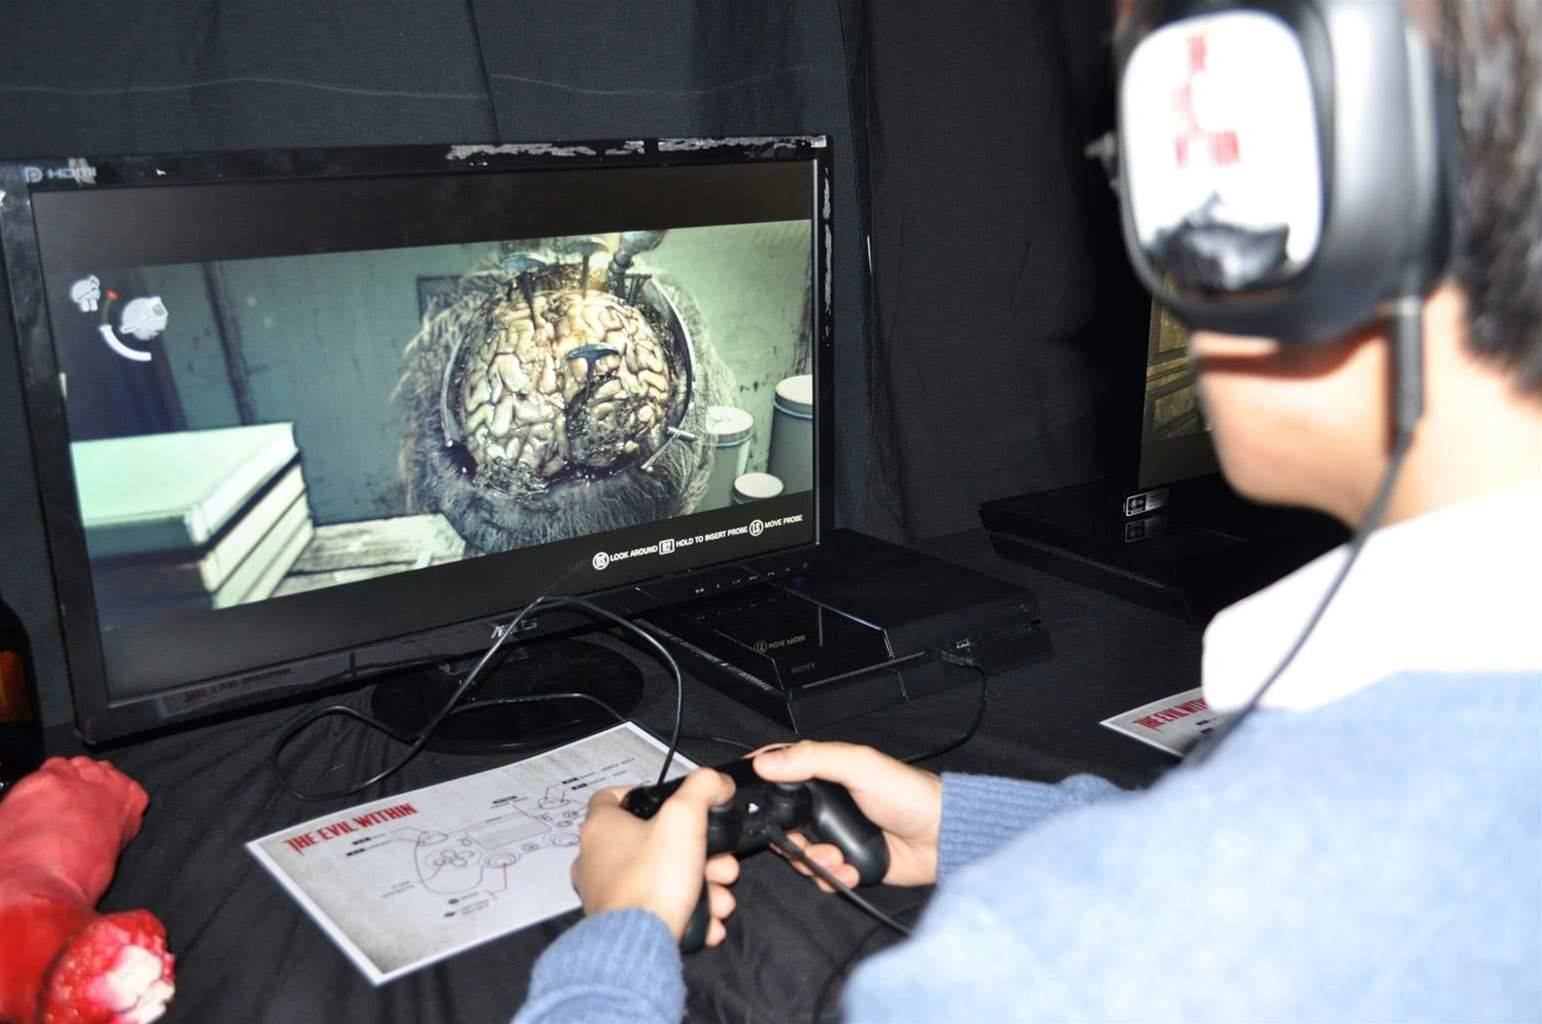 The Evil Within goes off at Power-Hyper-Atomic-PC HQ!